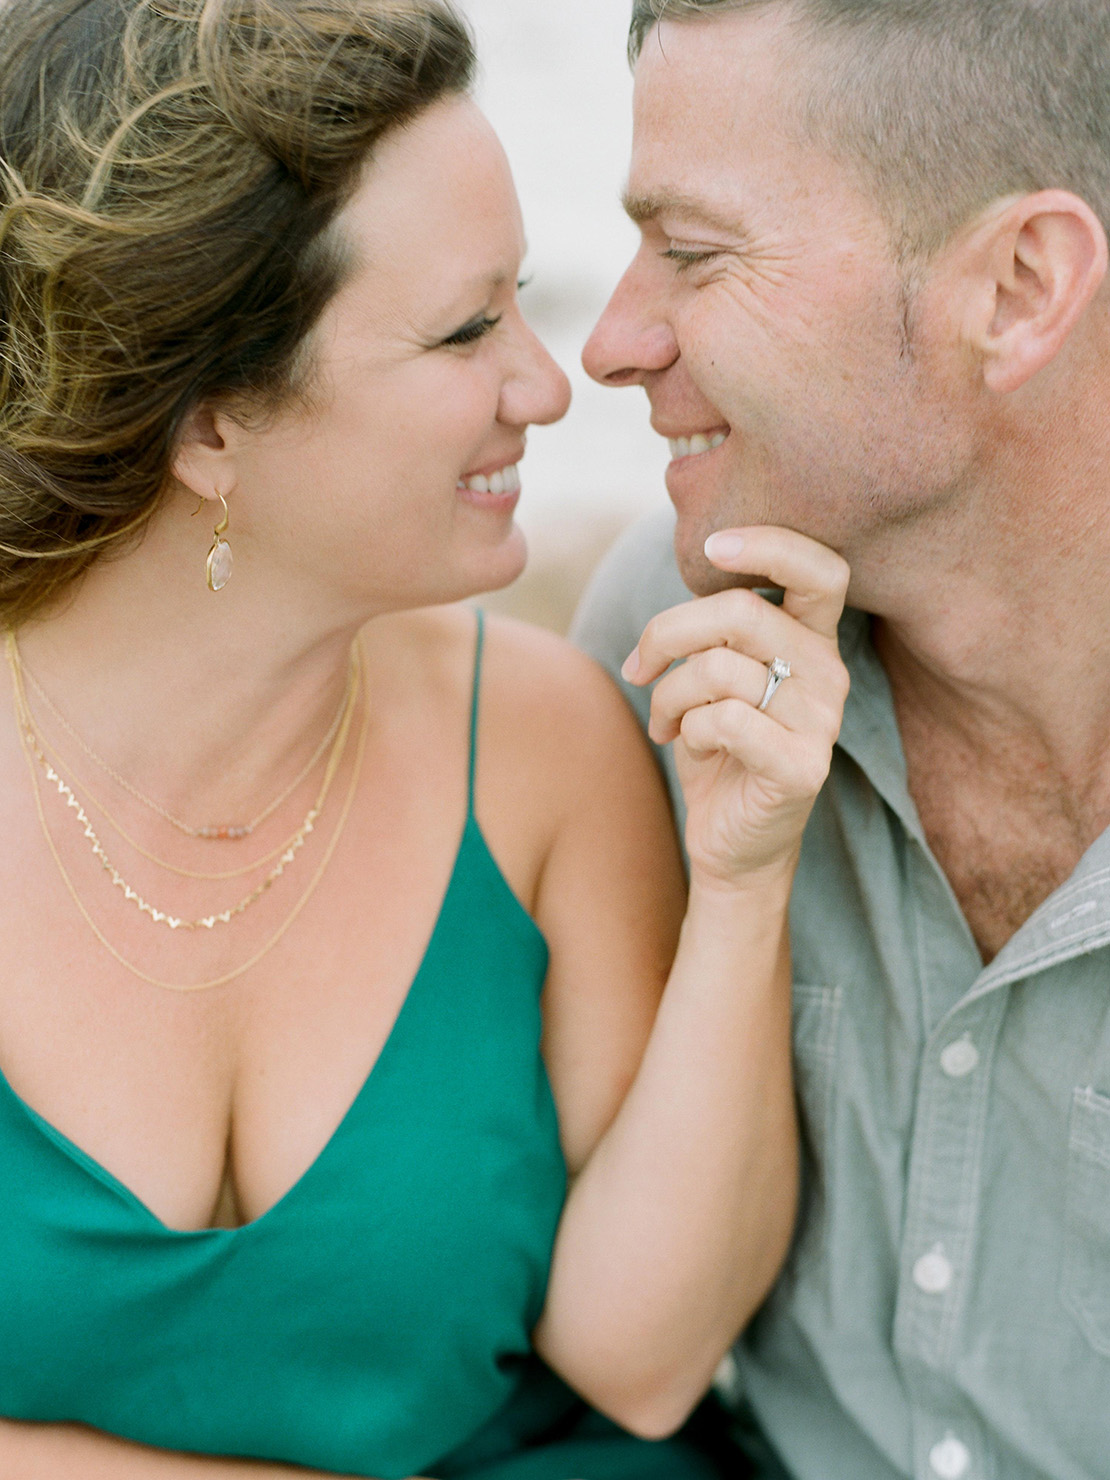 Heidi Vail Photography | Engagement Session at Old Silver Beach, North Falmouth | Destination Fine Art Wedding Photographer | Based in Orlando, Florida & Cape Cod, Massachusetts